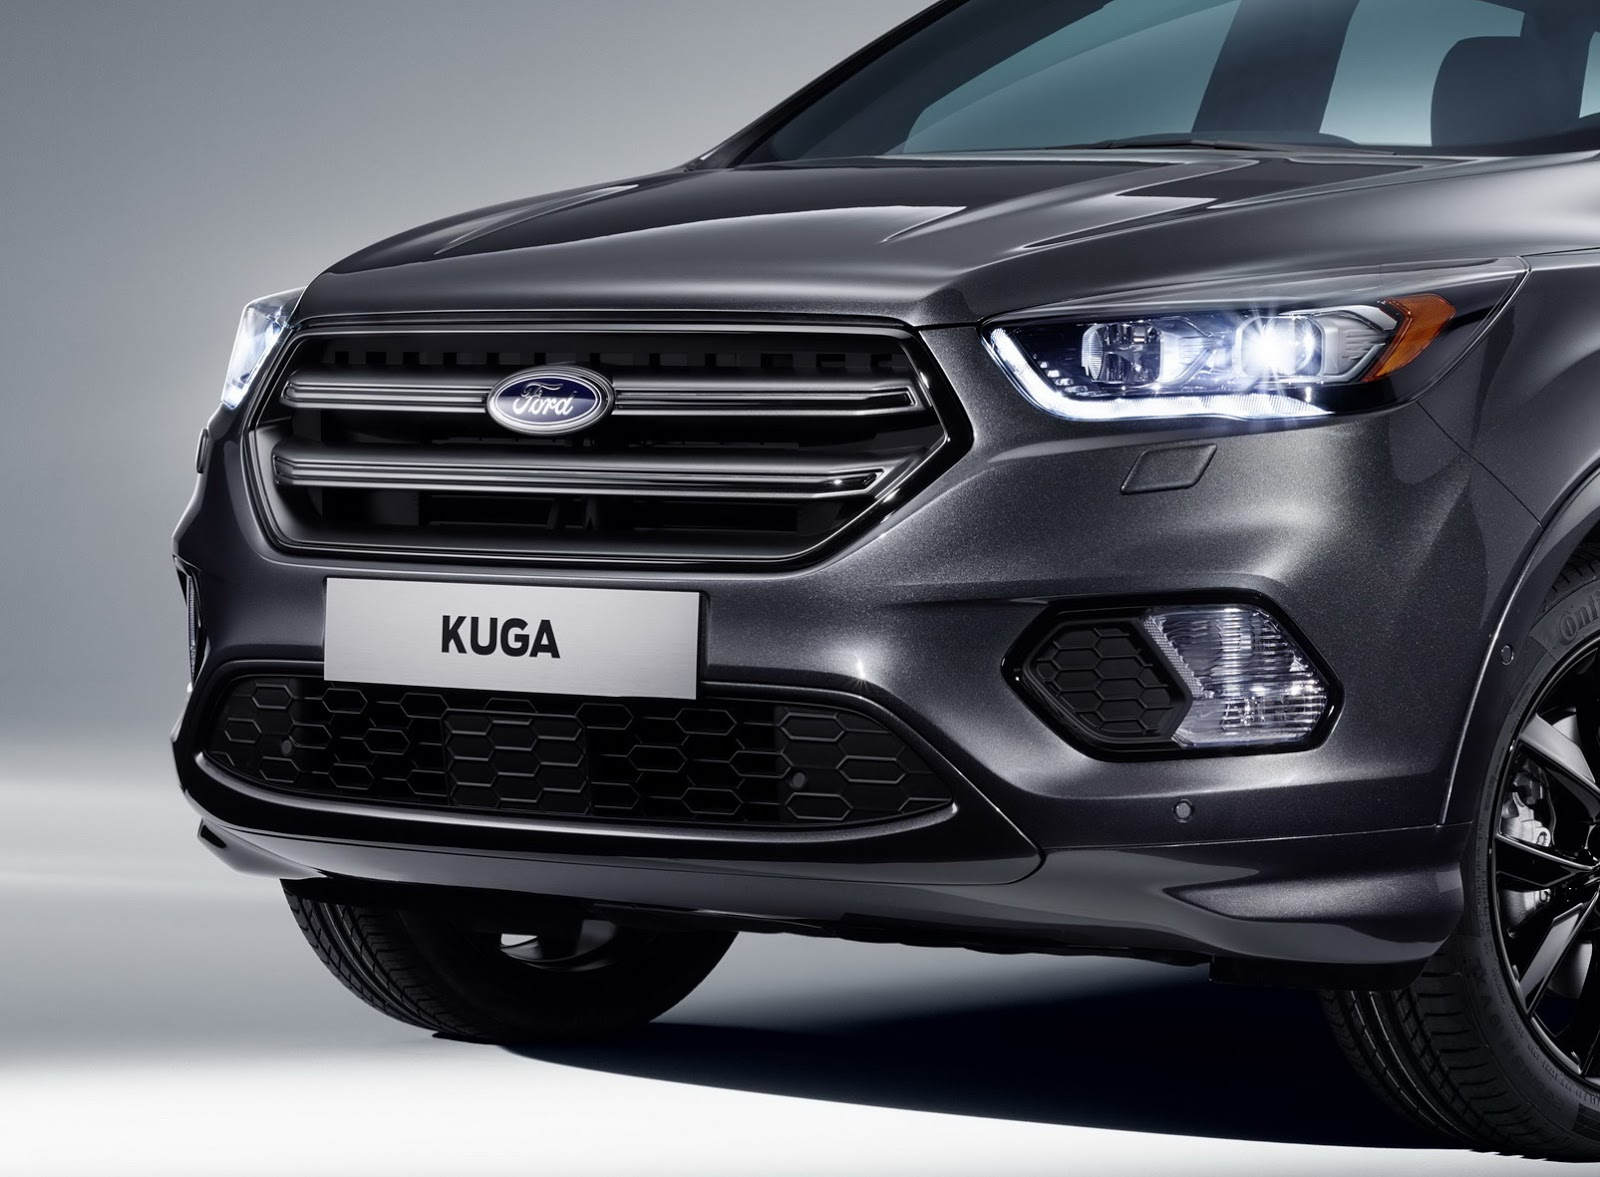 ford kuga facelift 2017 - photo #20